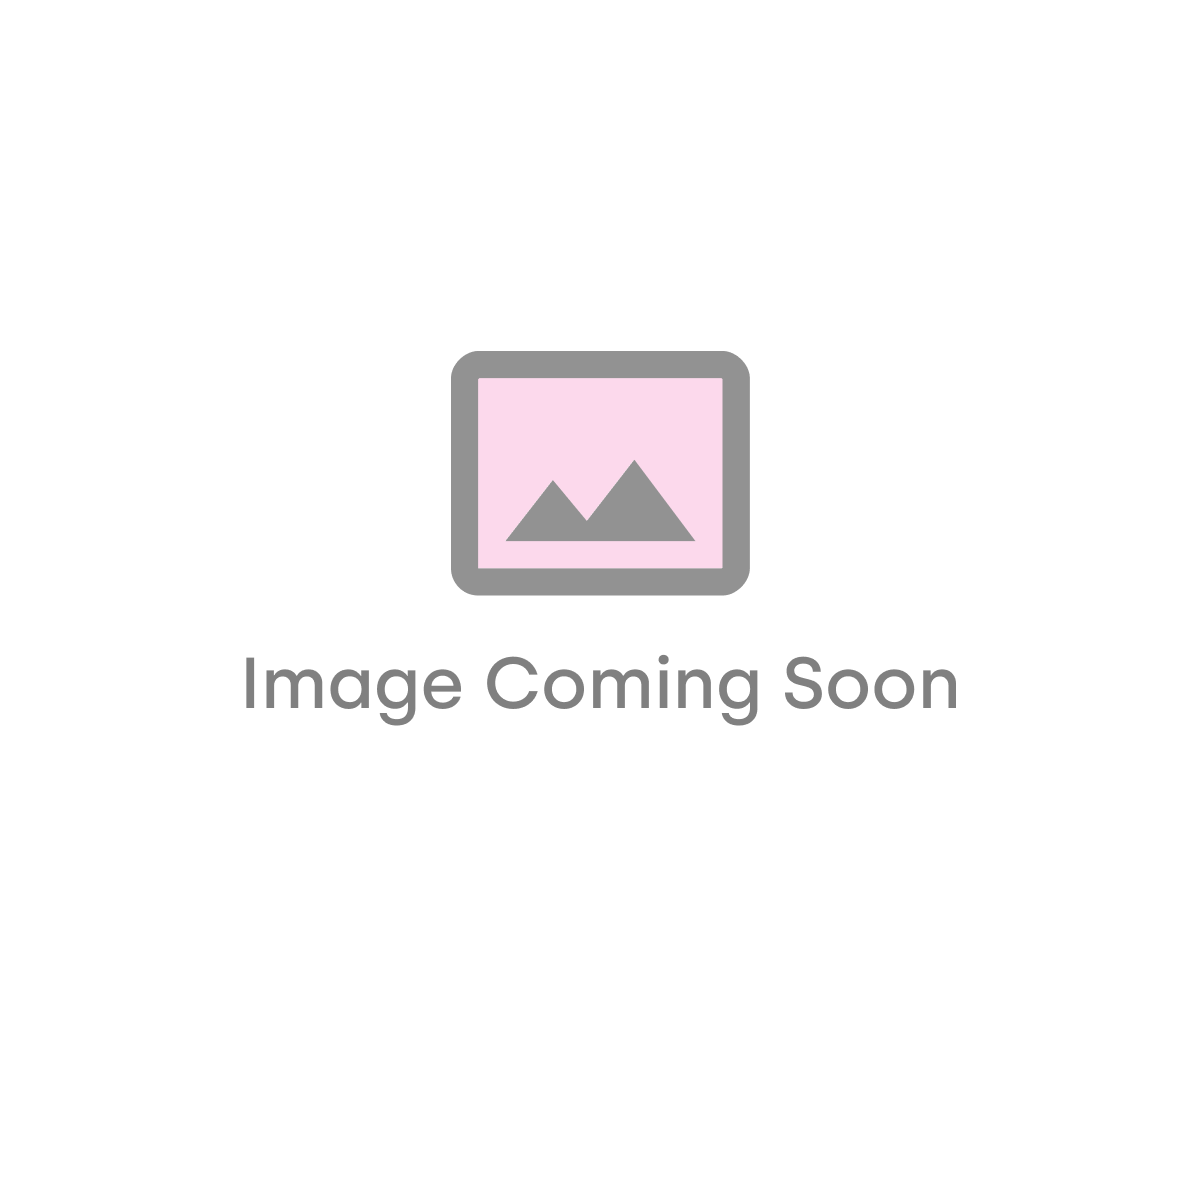 Elite 1.5 Bowl Inset or Undermounted Stainless Steel Kitchen Sink & Waste - Copper Finish (19015)